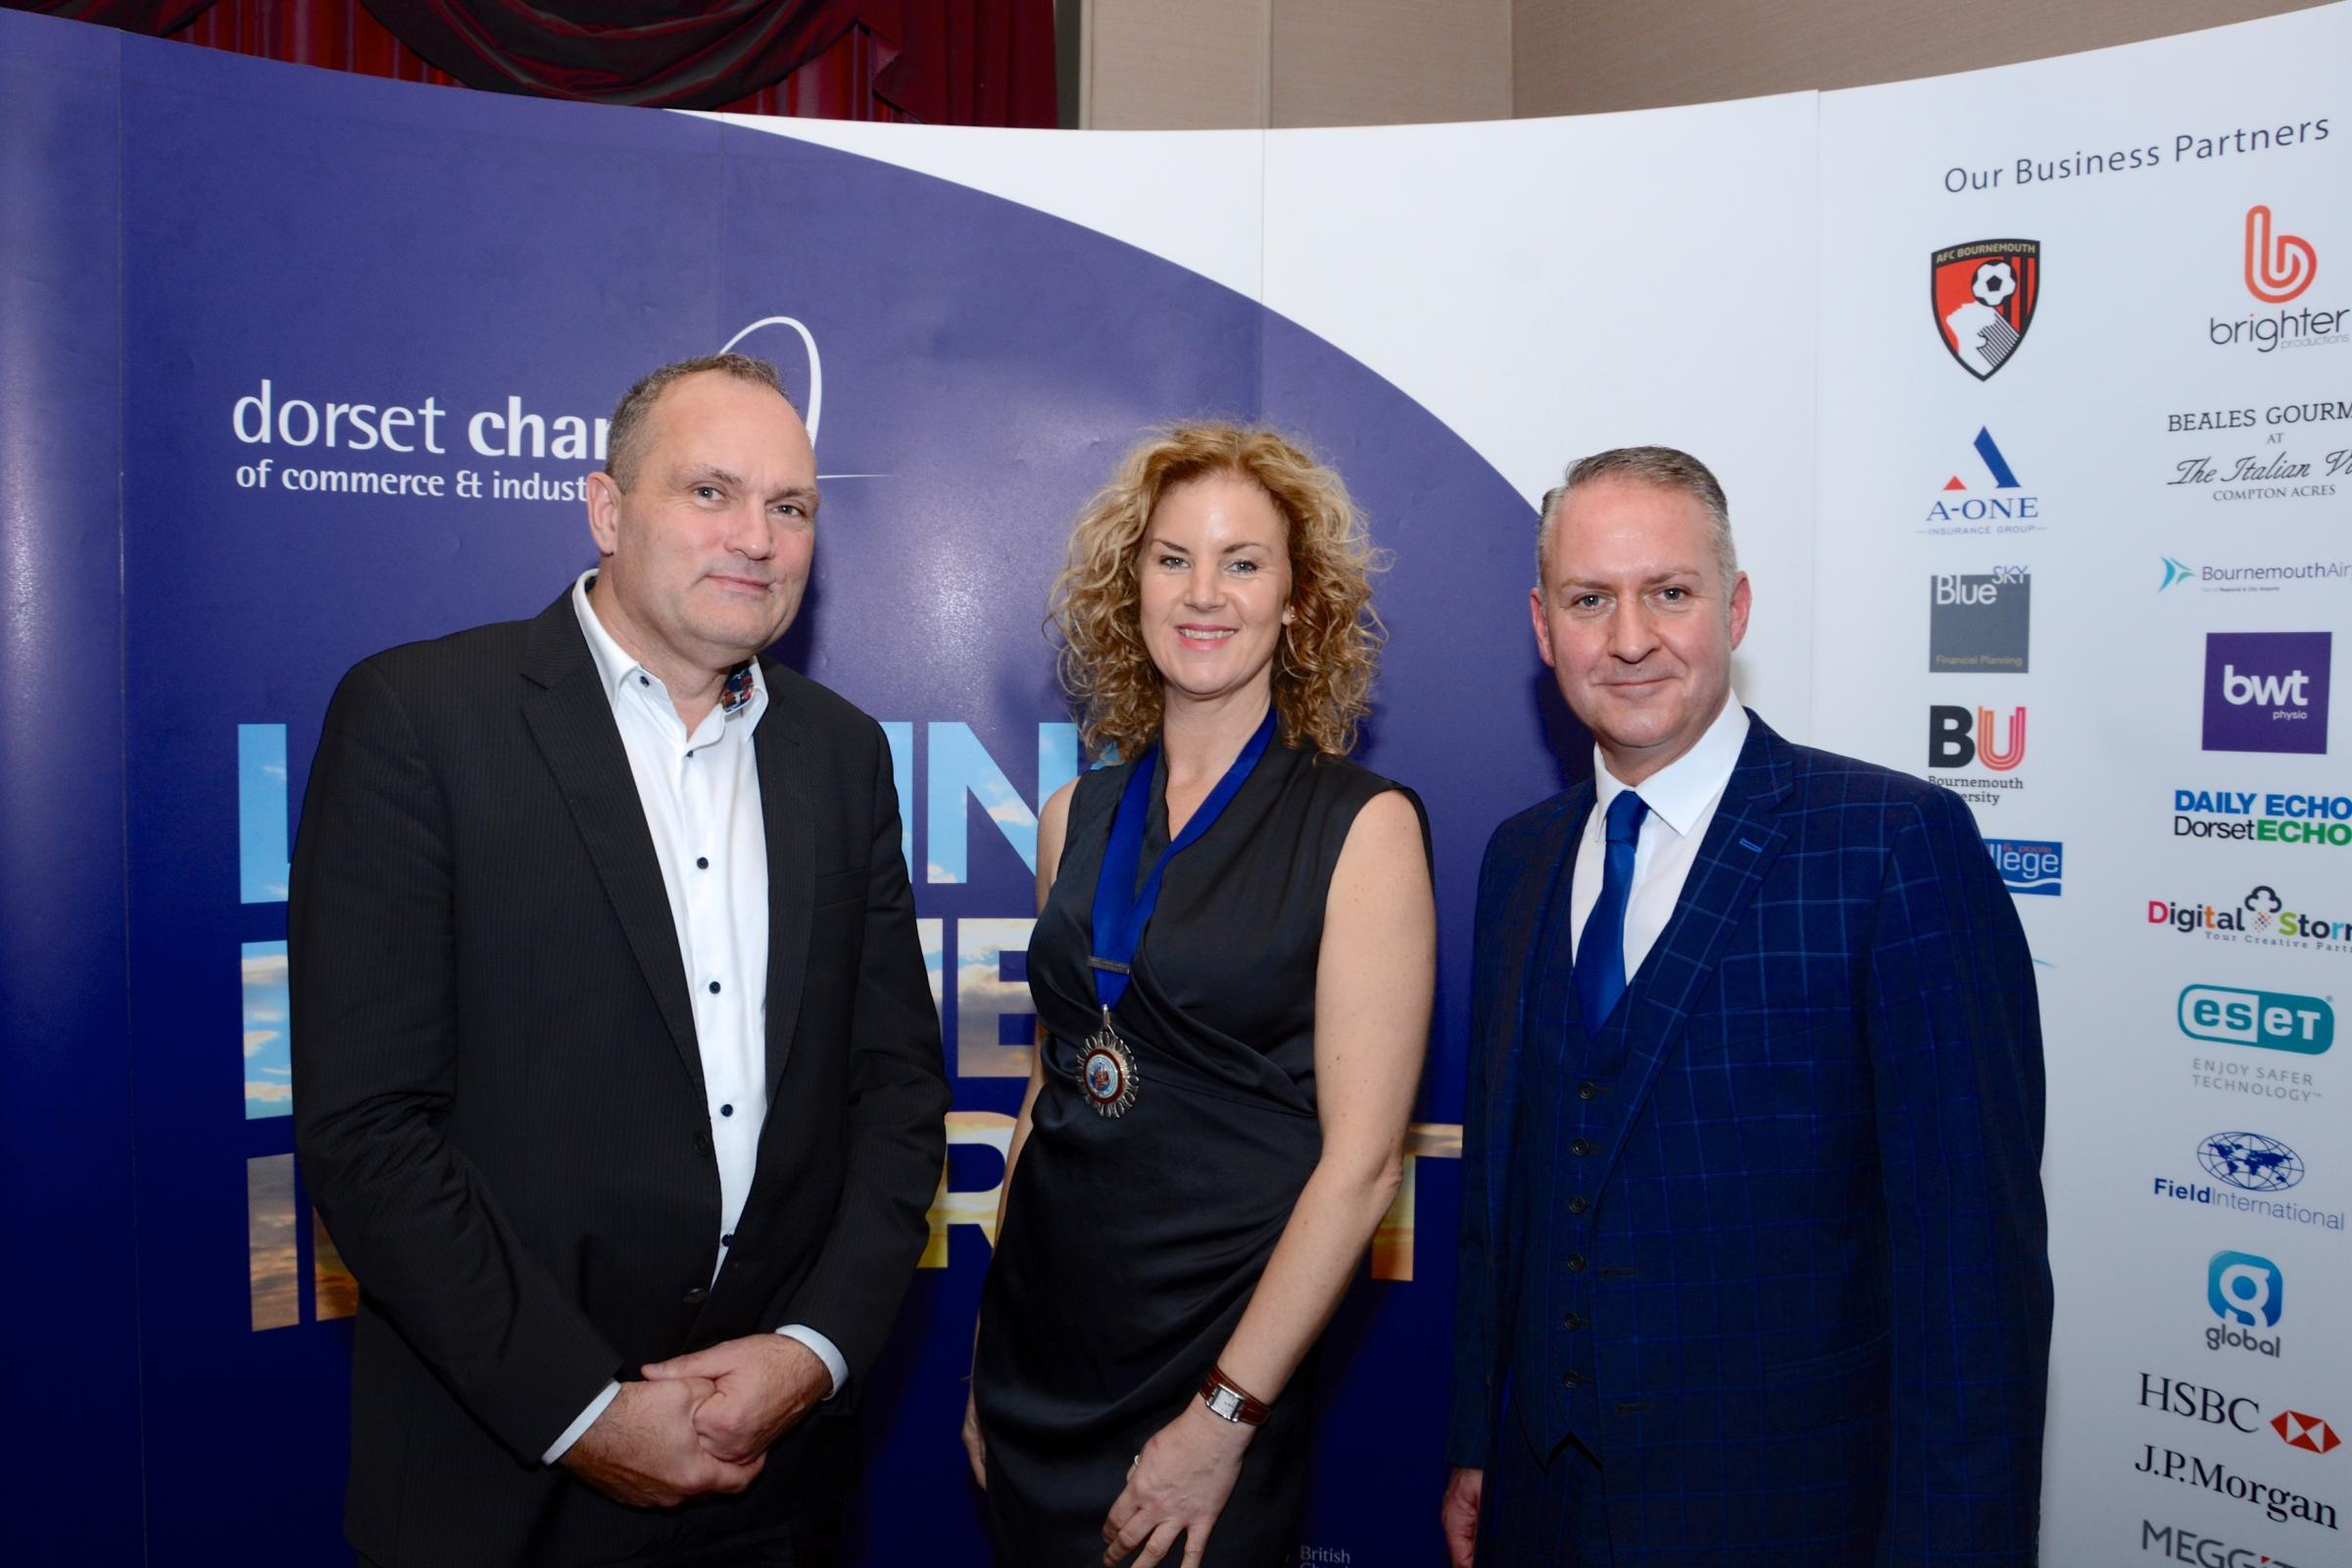 Liz Willingham becomes President of the Dorset Chamber - Bournemouth Echo